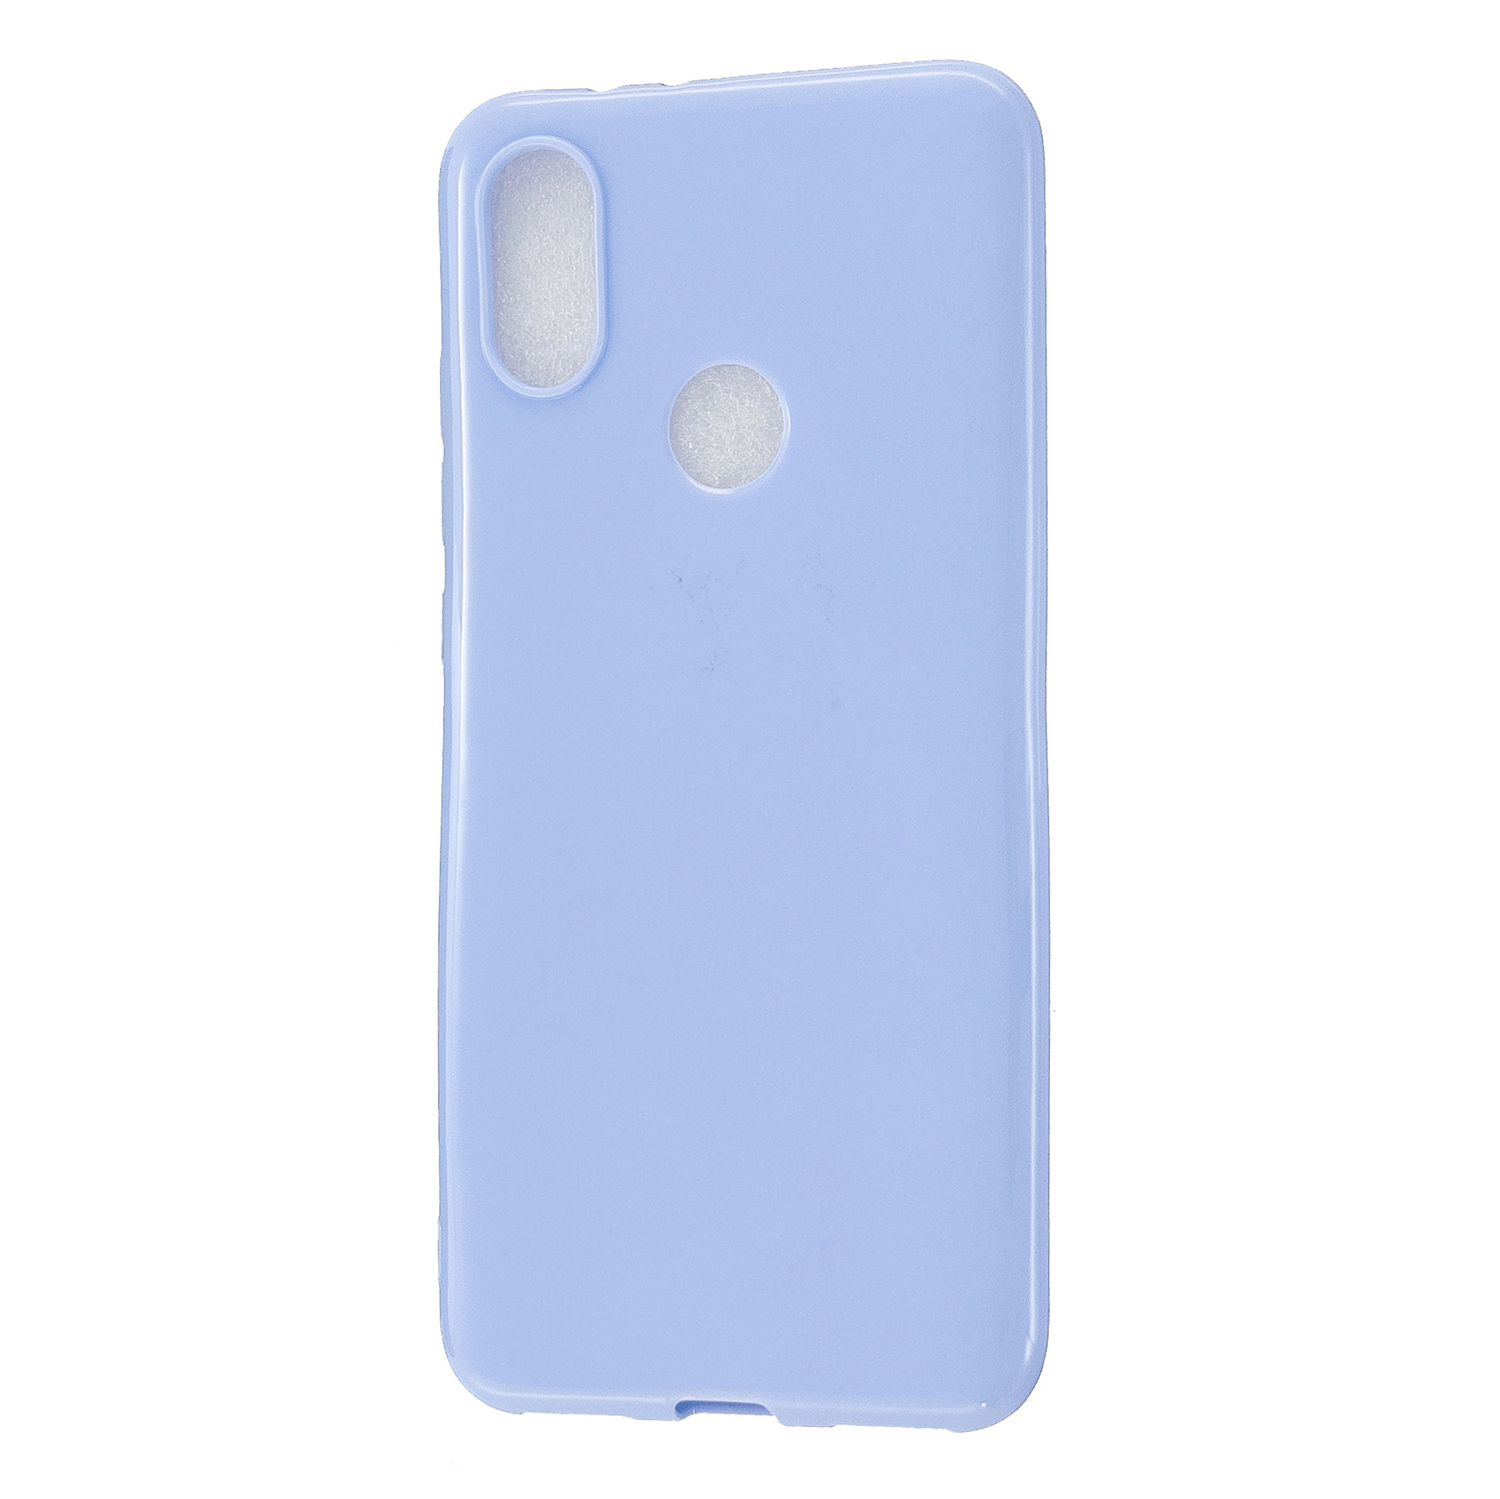 For Redmi GO/Note 5 Pro/Note 6 Pro Cellphone Cover Drop and Shock Proof Soft TPU Phone Case Classic Shell Taro purple